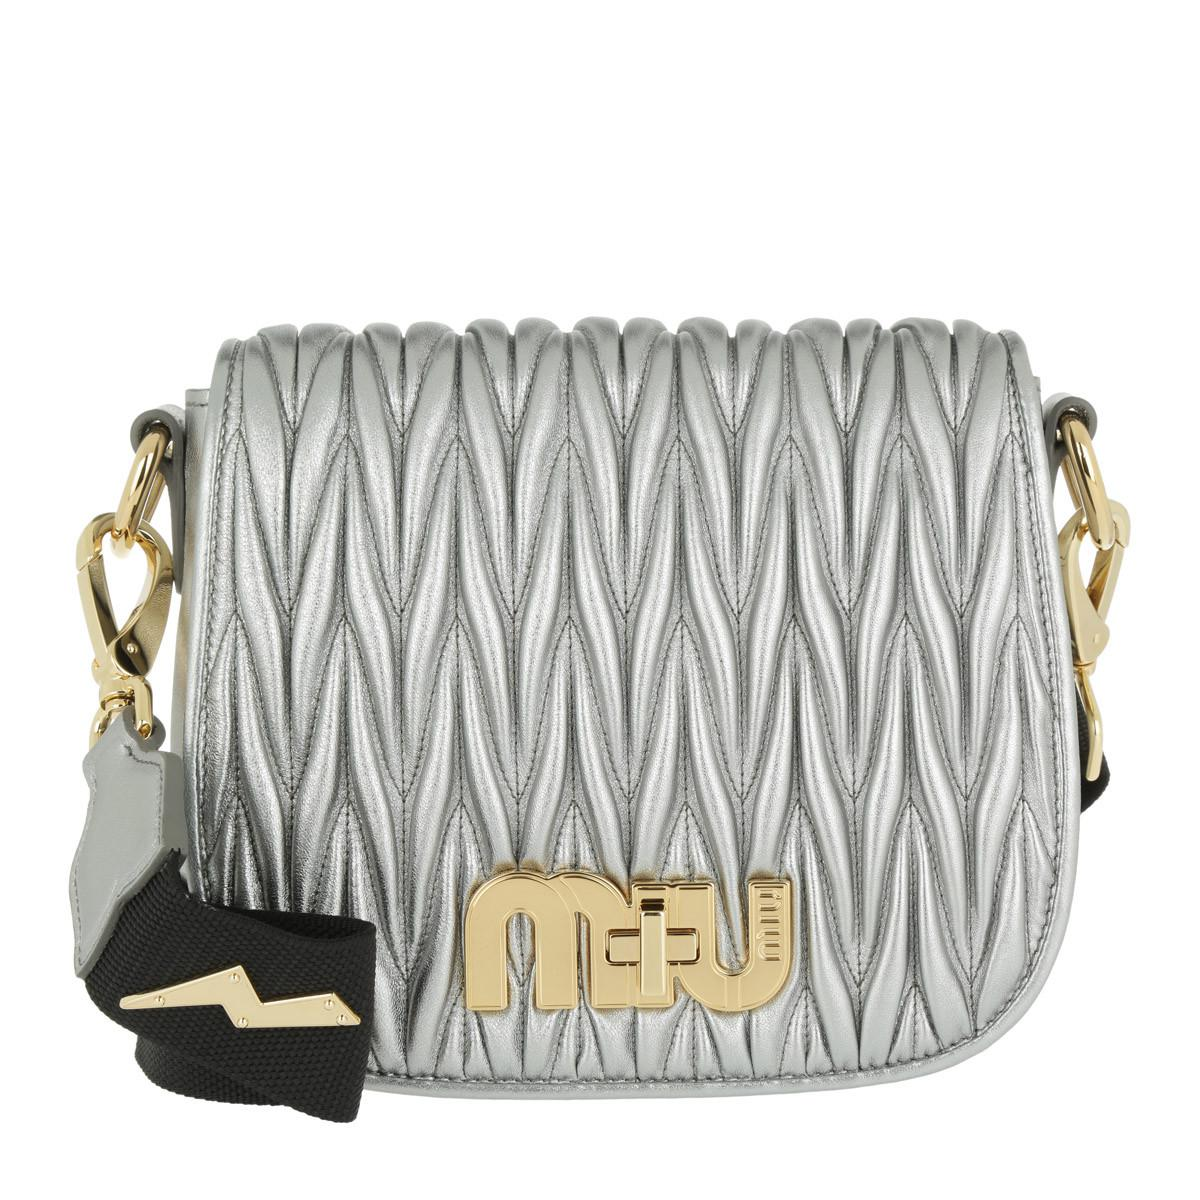 Cross Body Bags - Diagramme Nappa Leather Bag Cromo - silver - Cross Body Bags for ladies Prada TpkaYe